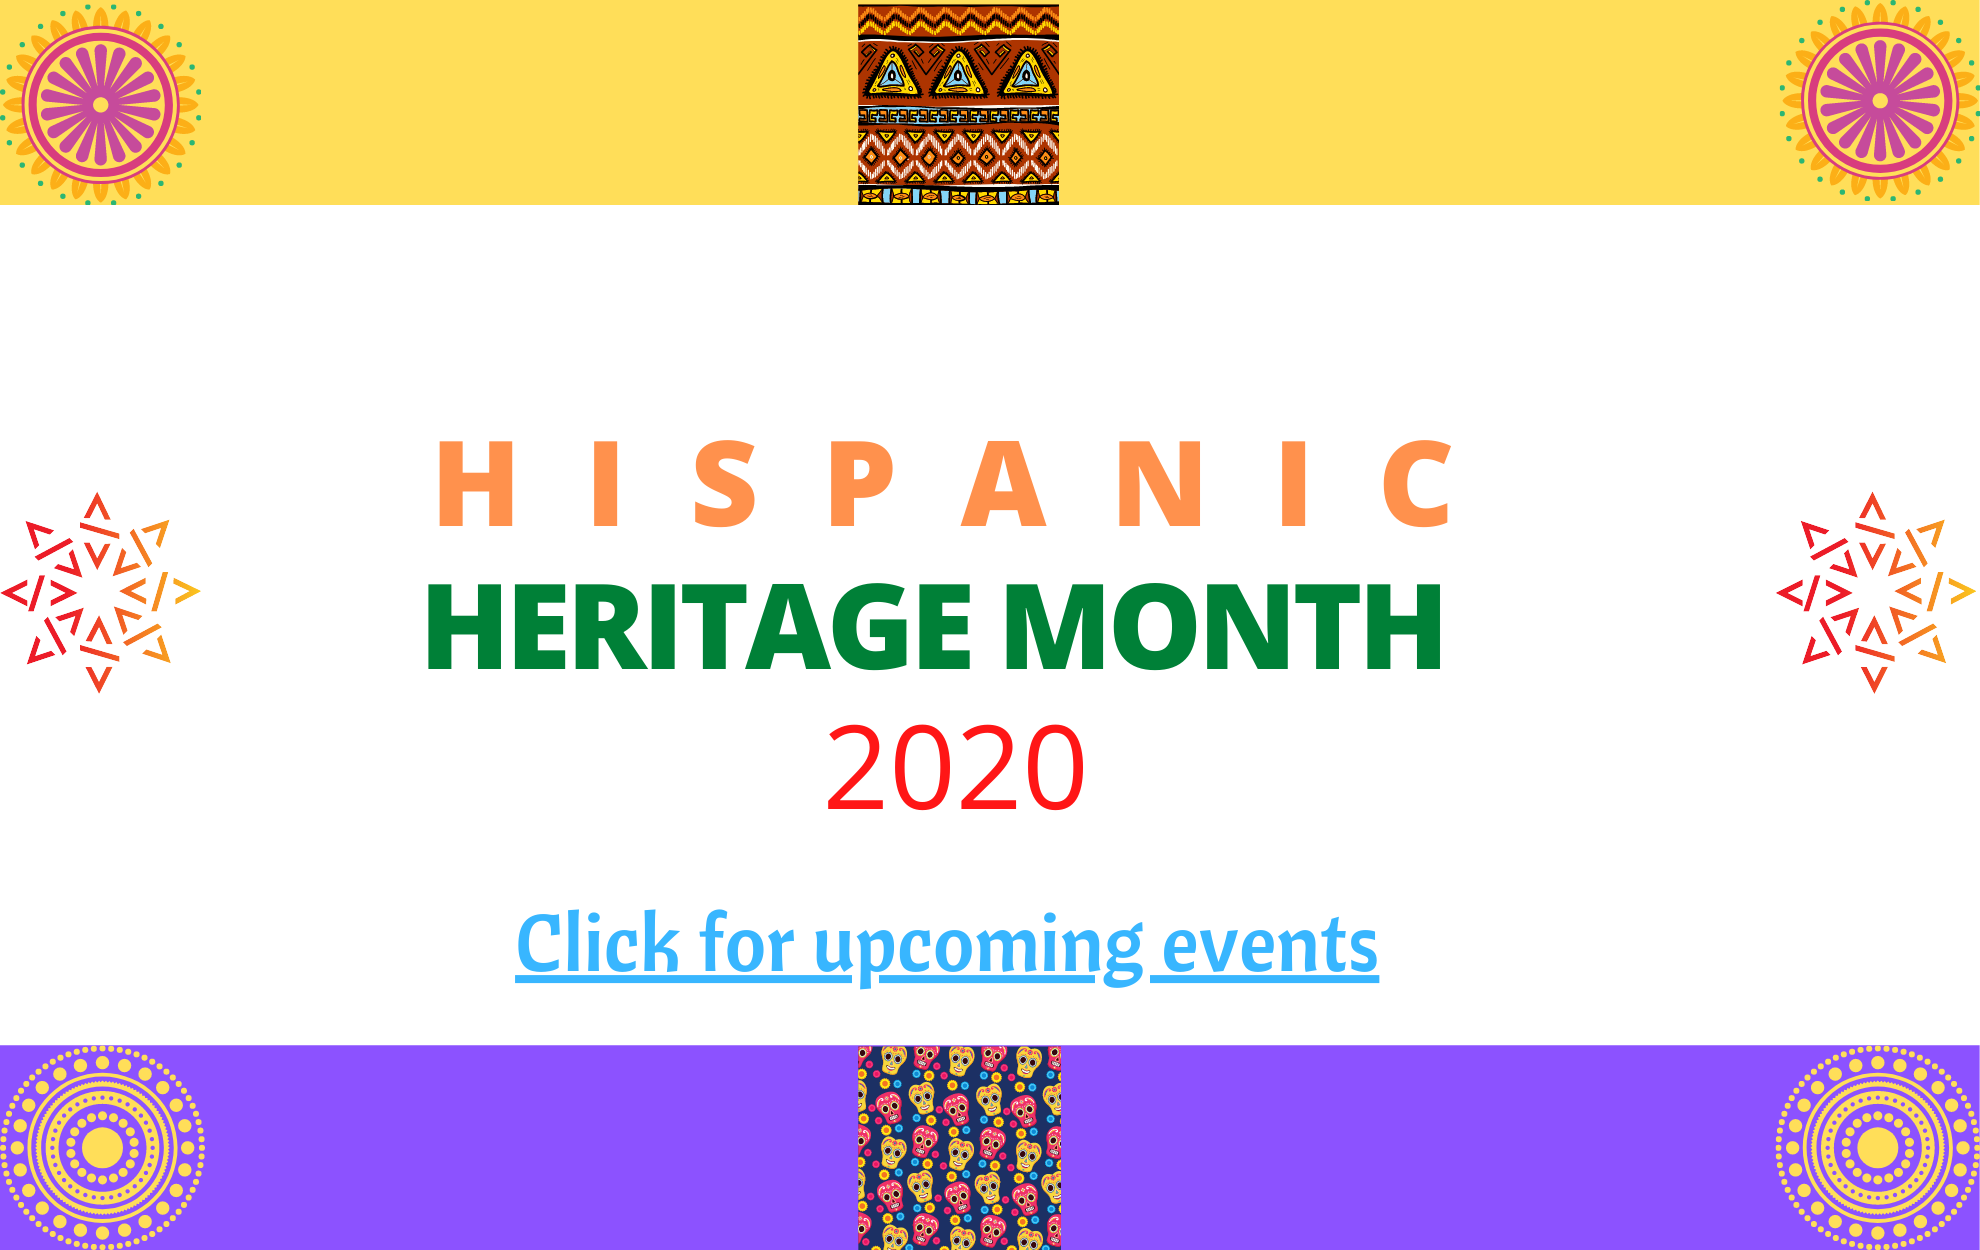 Click for upcoming Hispanic Heritage Month events.